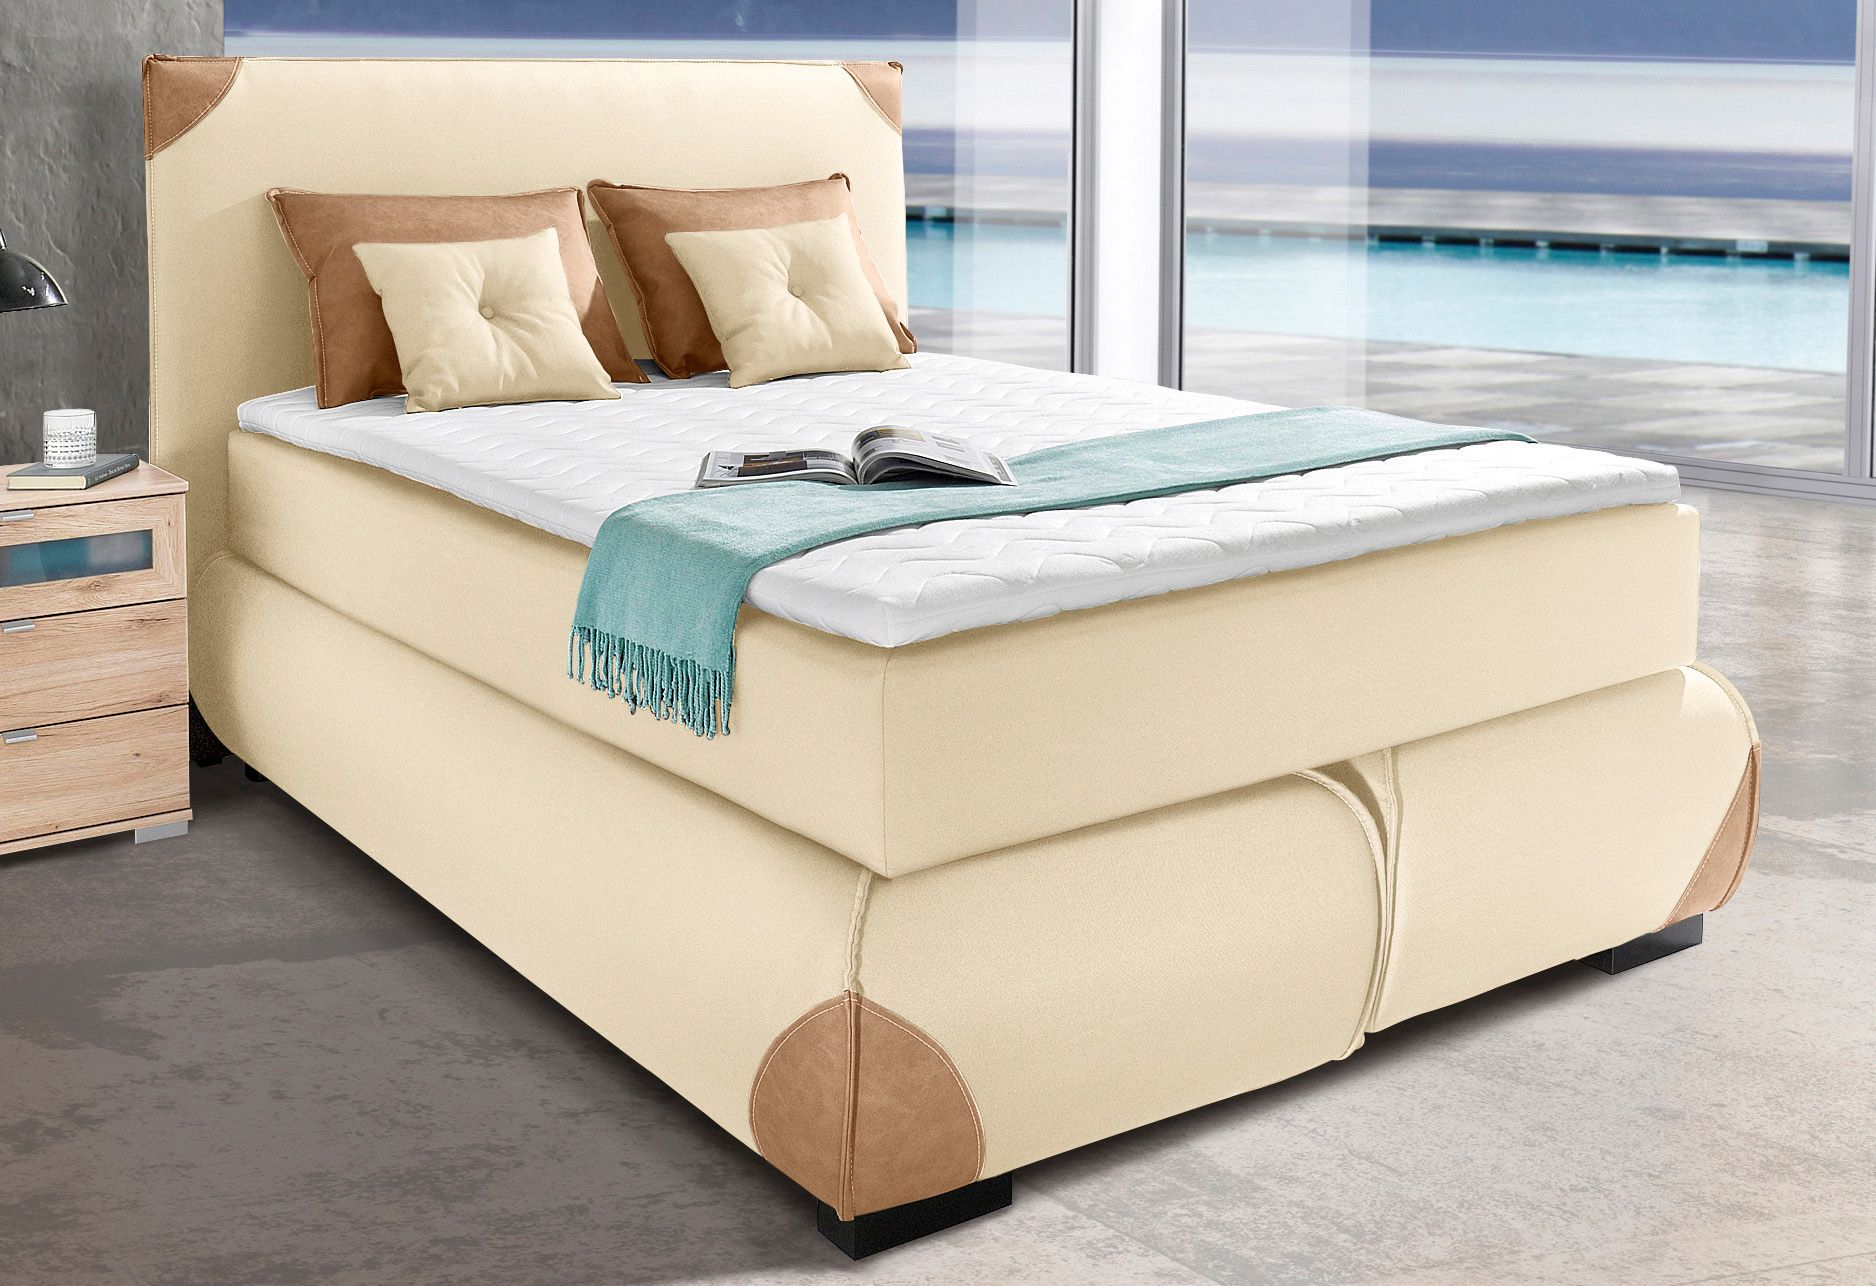 COLLECTION AB Collection AB Boxspringbett inkl. Topper und Kissen